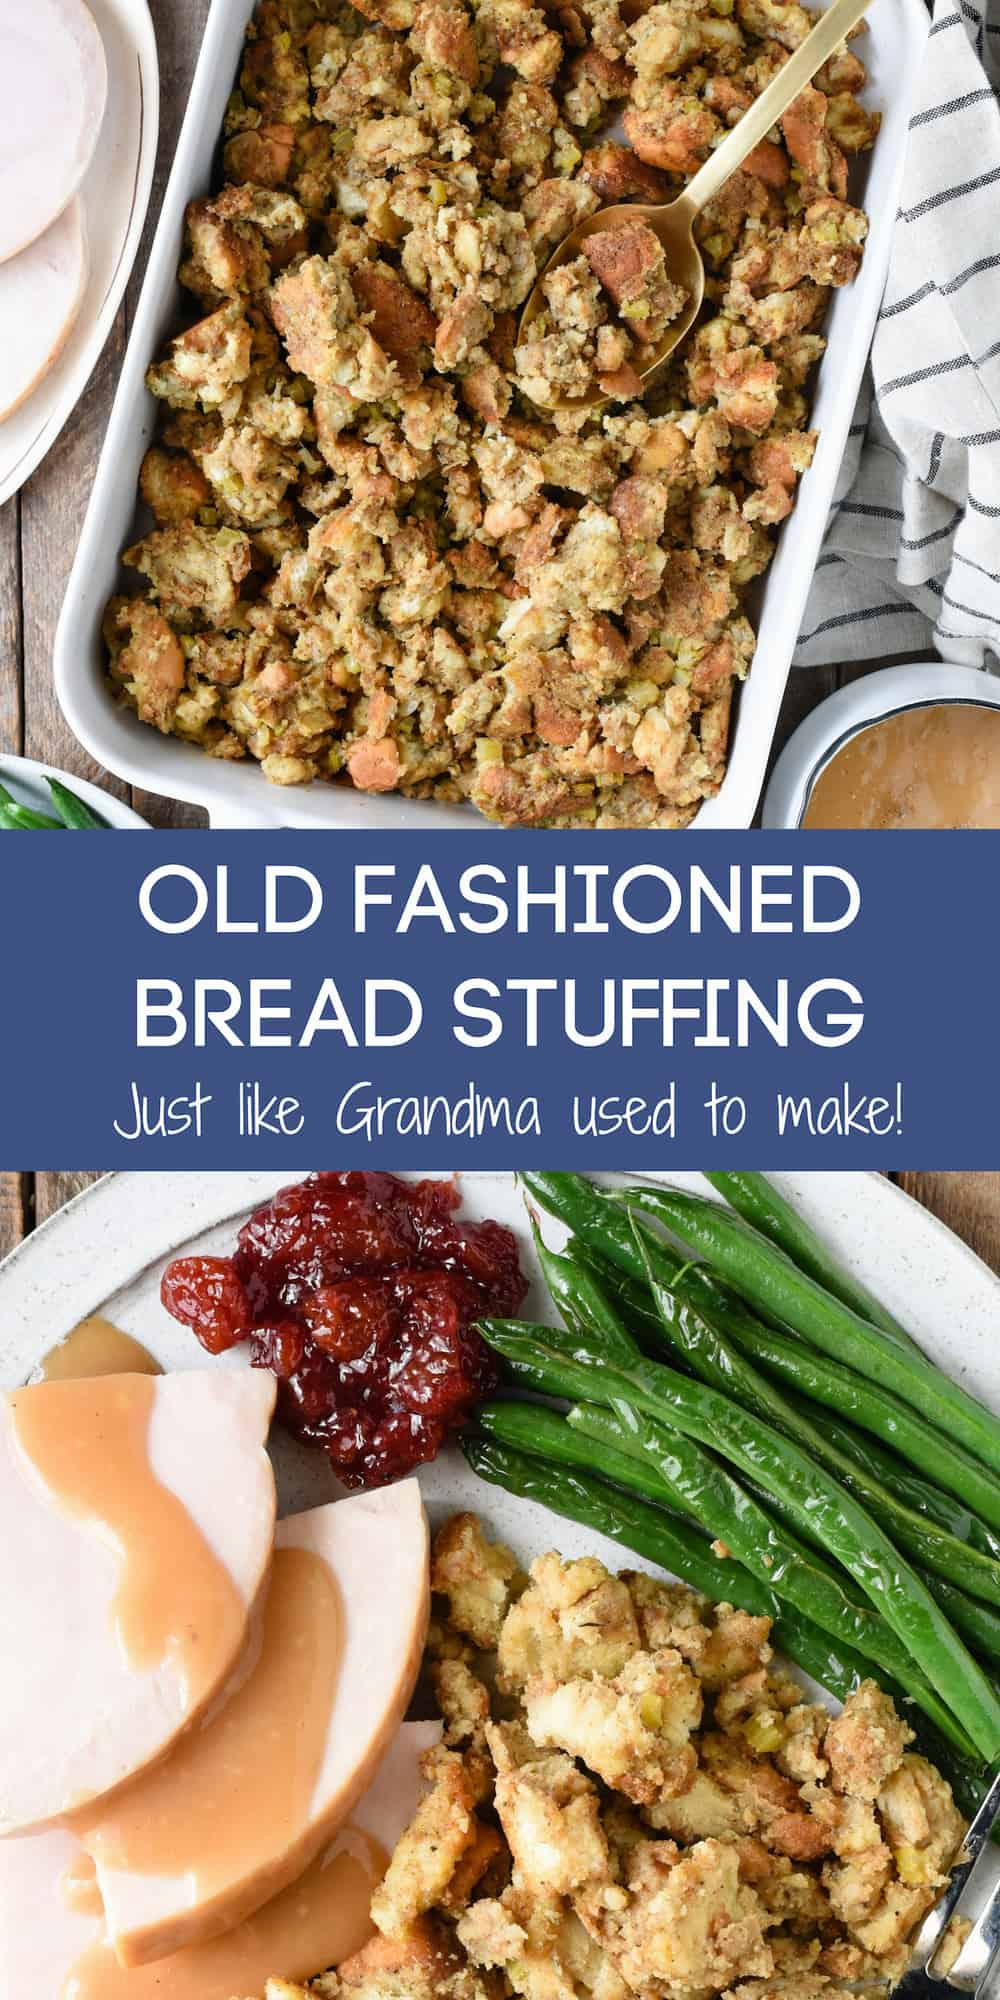 Collage of images of baking dish filled with bread stuffing, and plate of Thanksgiving food, with overlay: OLD FASHIONED BREAD STUFFING Just like Grandma used to make!